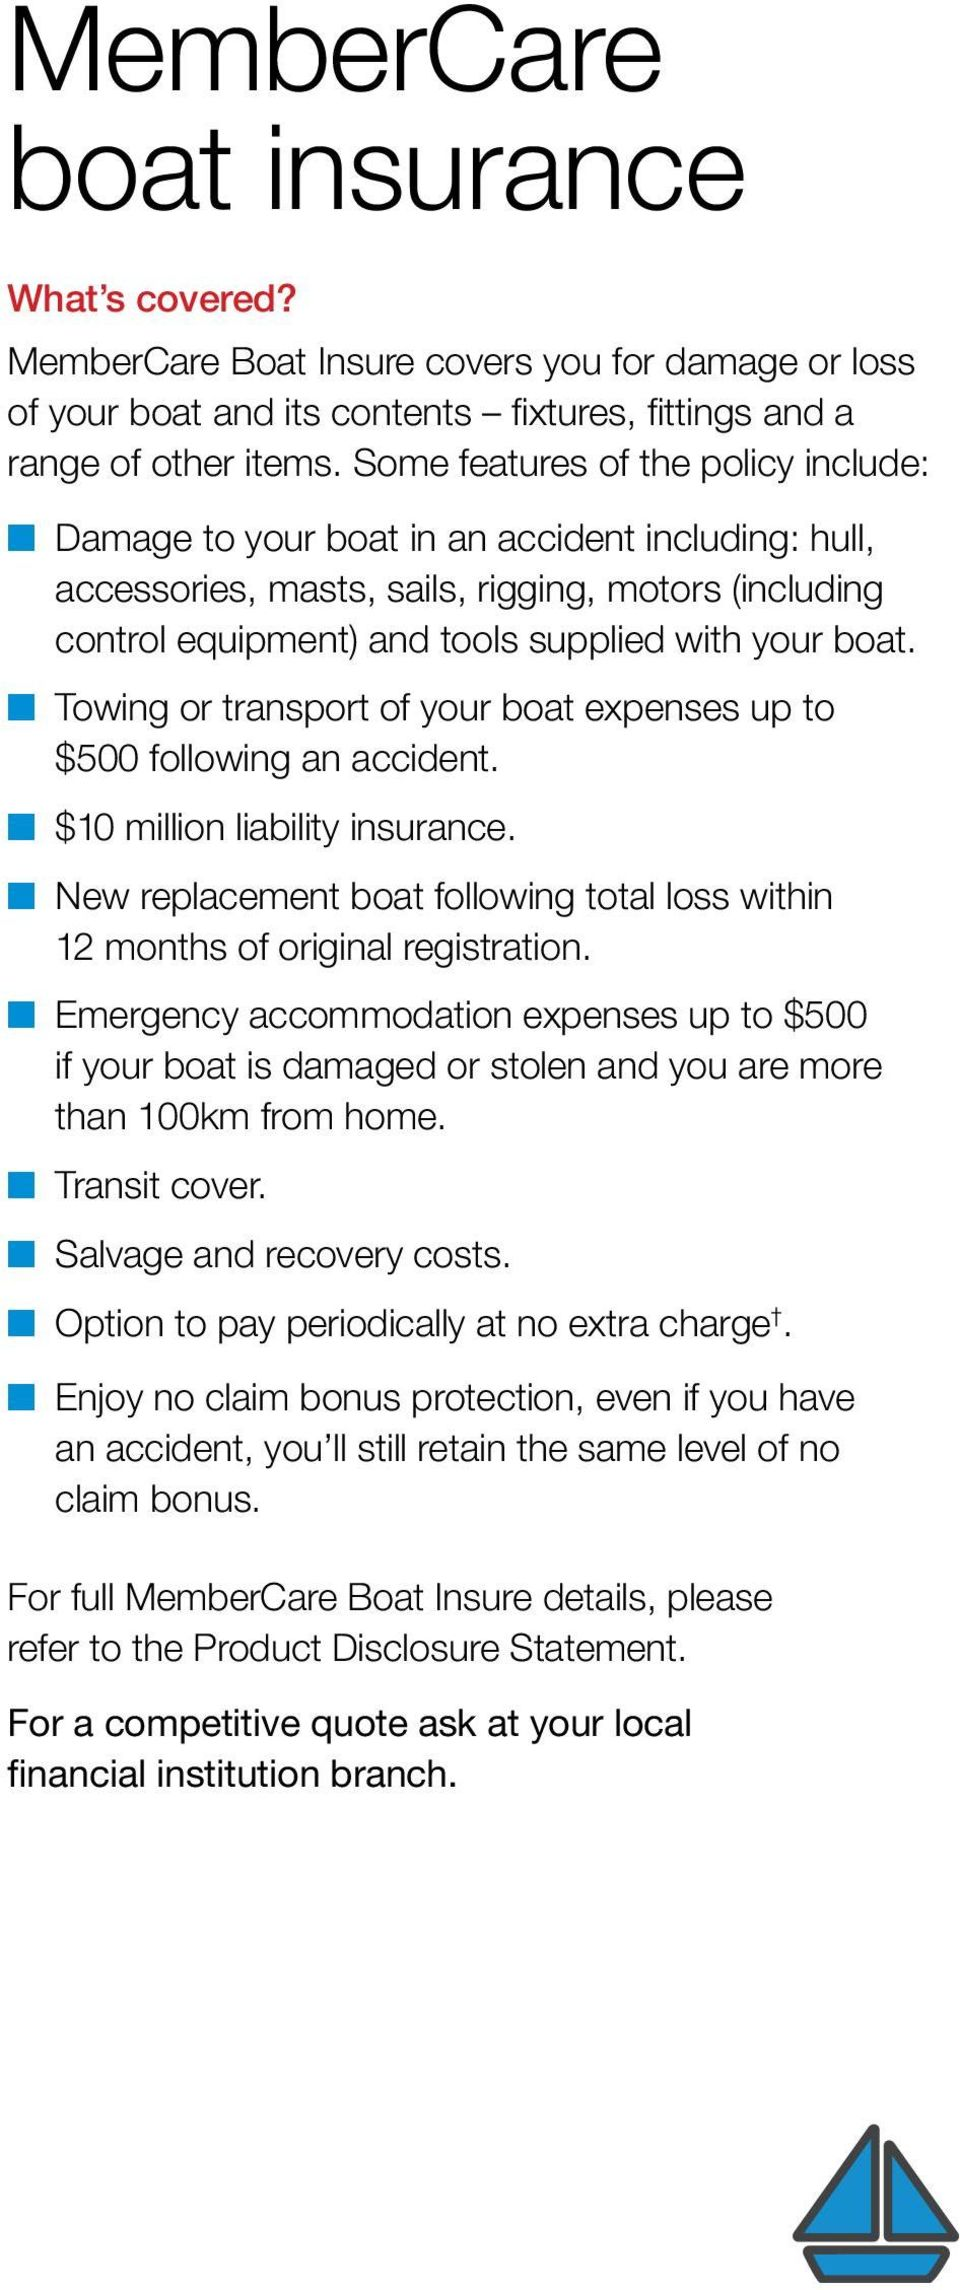 Towing or transport of your boat expenses up to $500 following an accident. $10 million liability insurance. New replacement boat following total loss within 12 months of original registration.